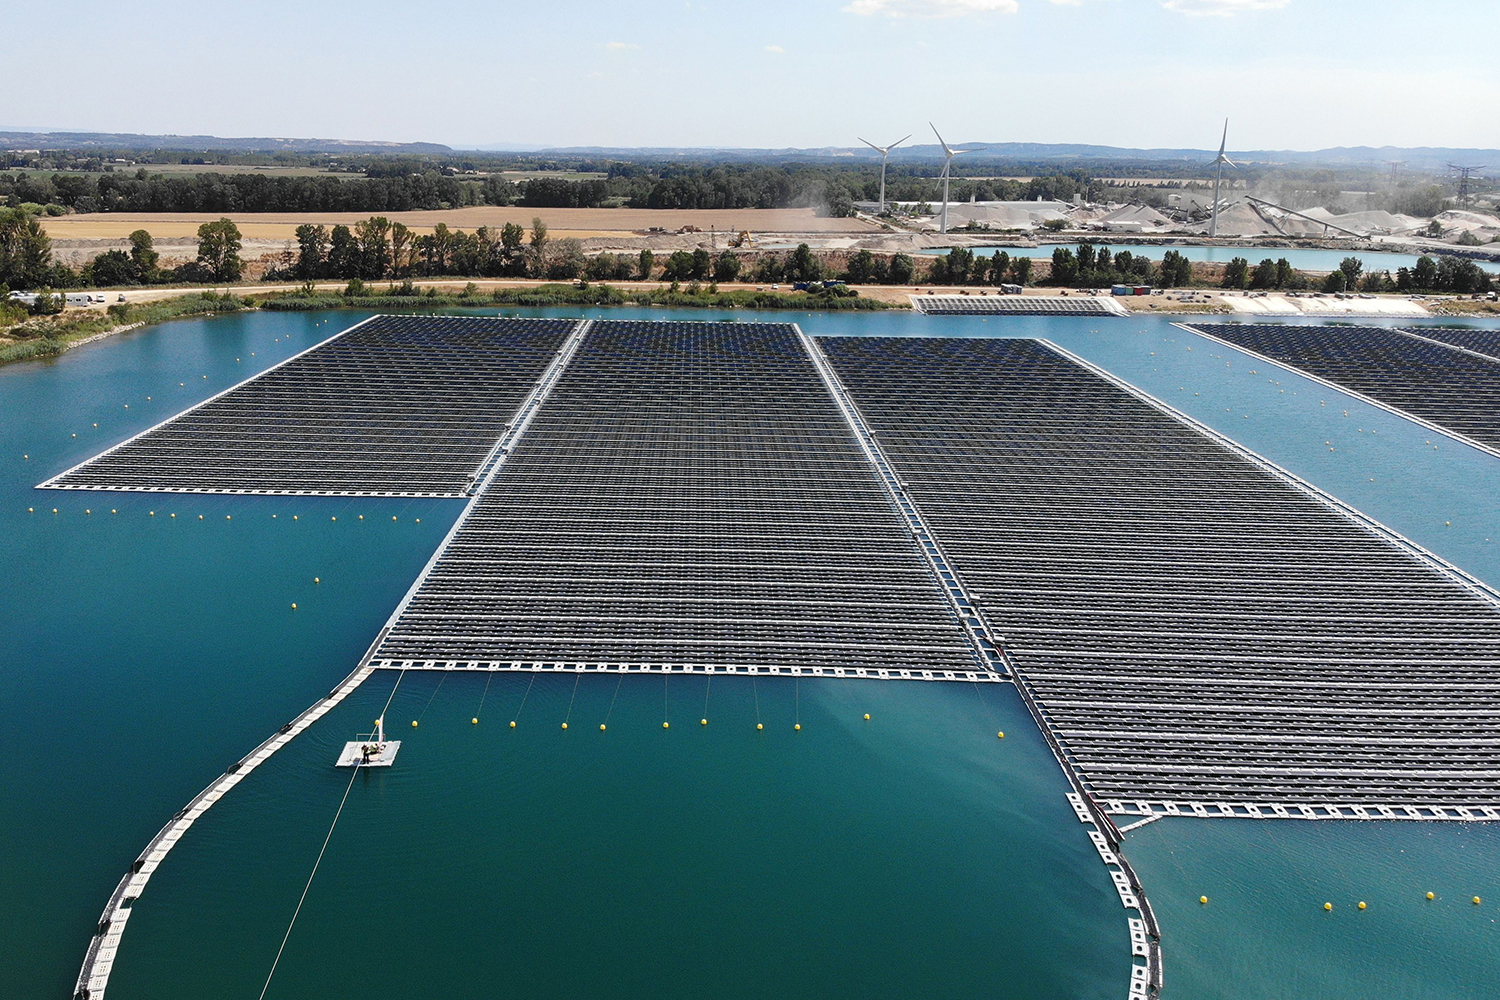 Photovoltaic solar panels sweep the landscape at a floating solar-energy farm in southern France on July 30. GERARD JULIEN/AFP/Getty Images